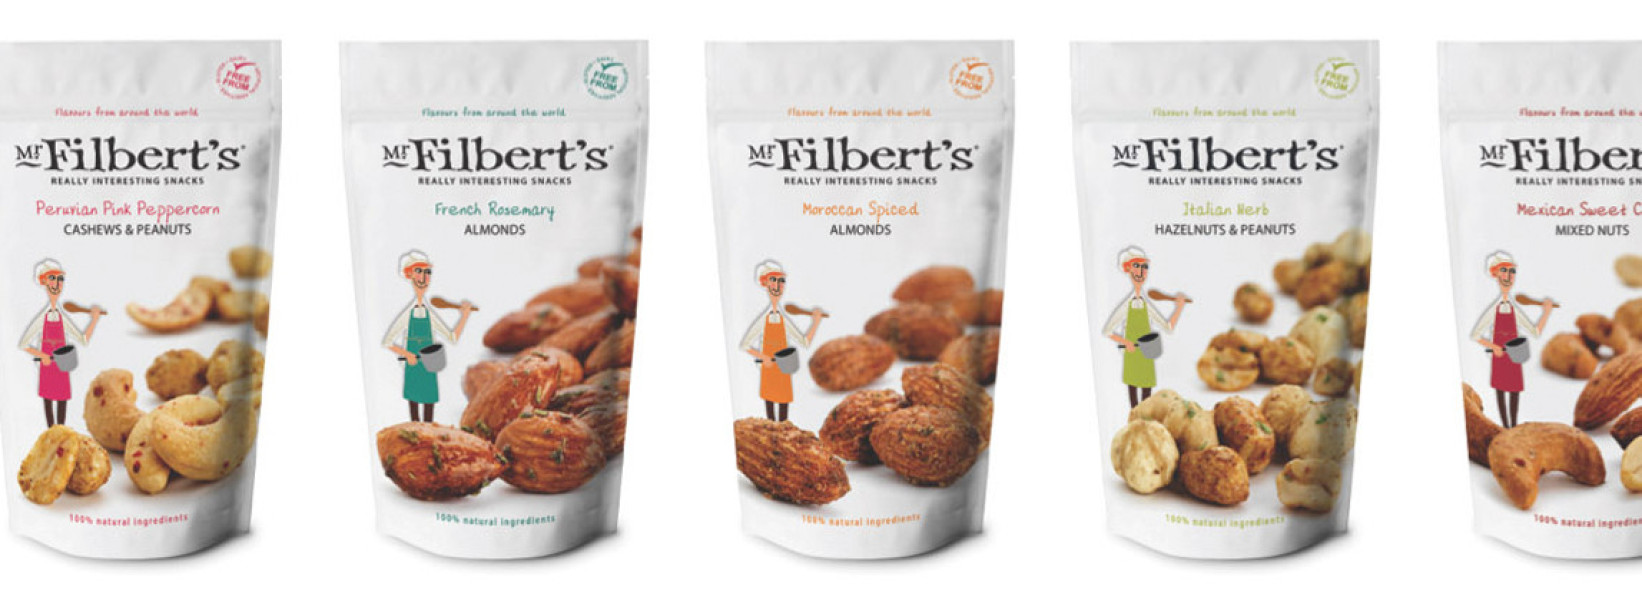 Mr Filbert's Nuts